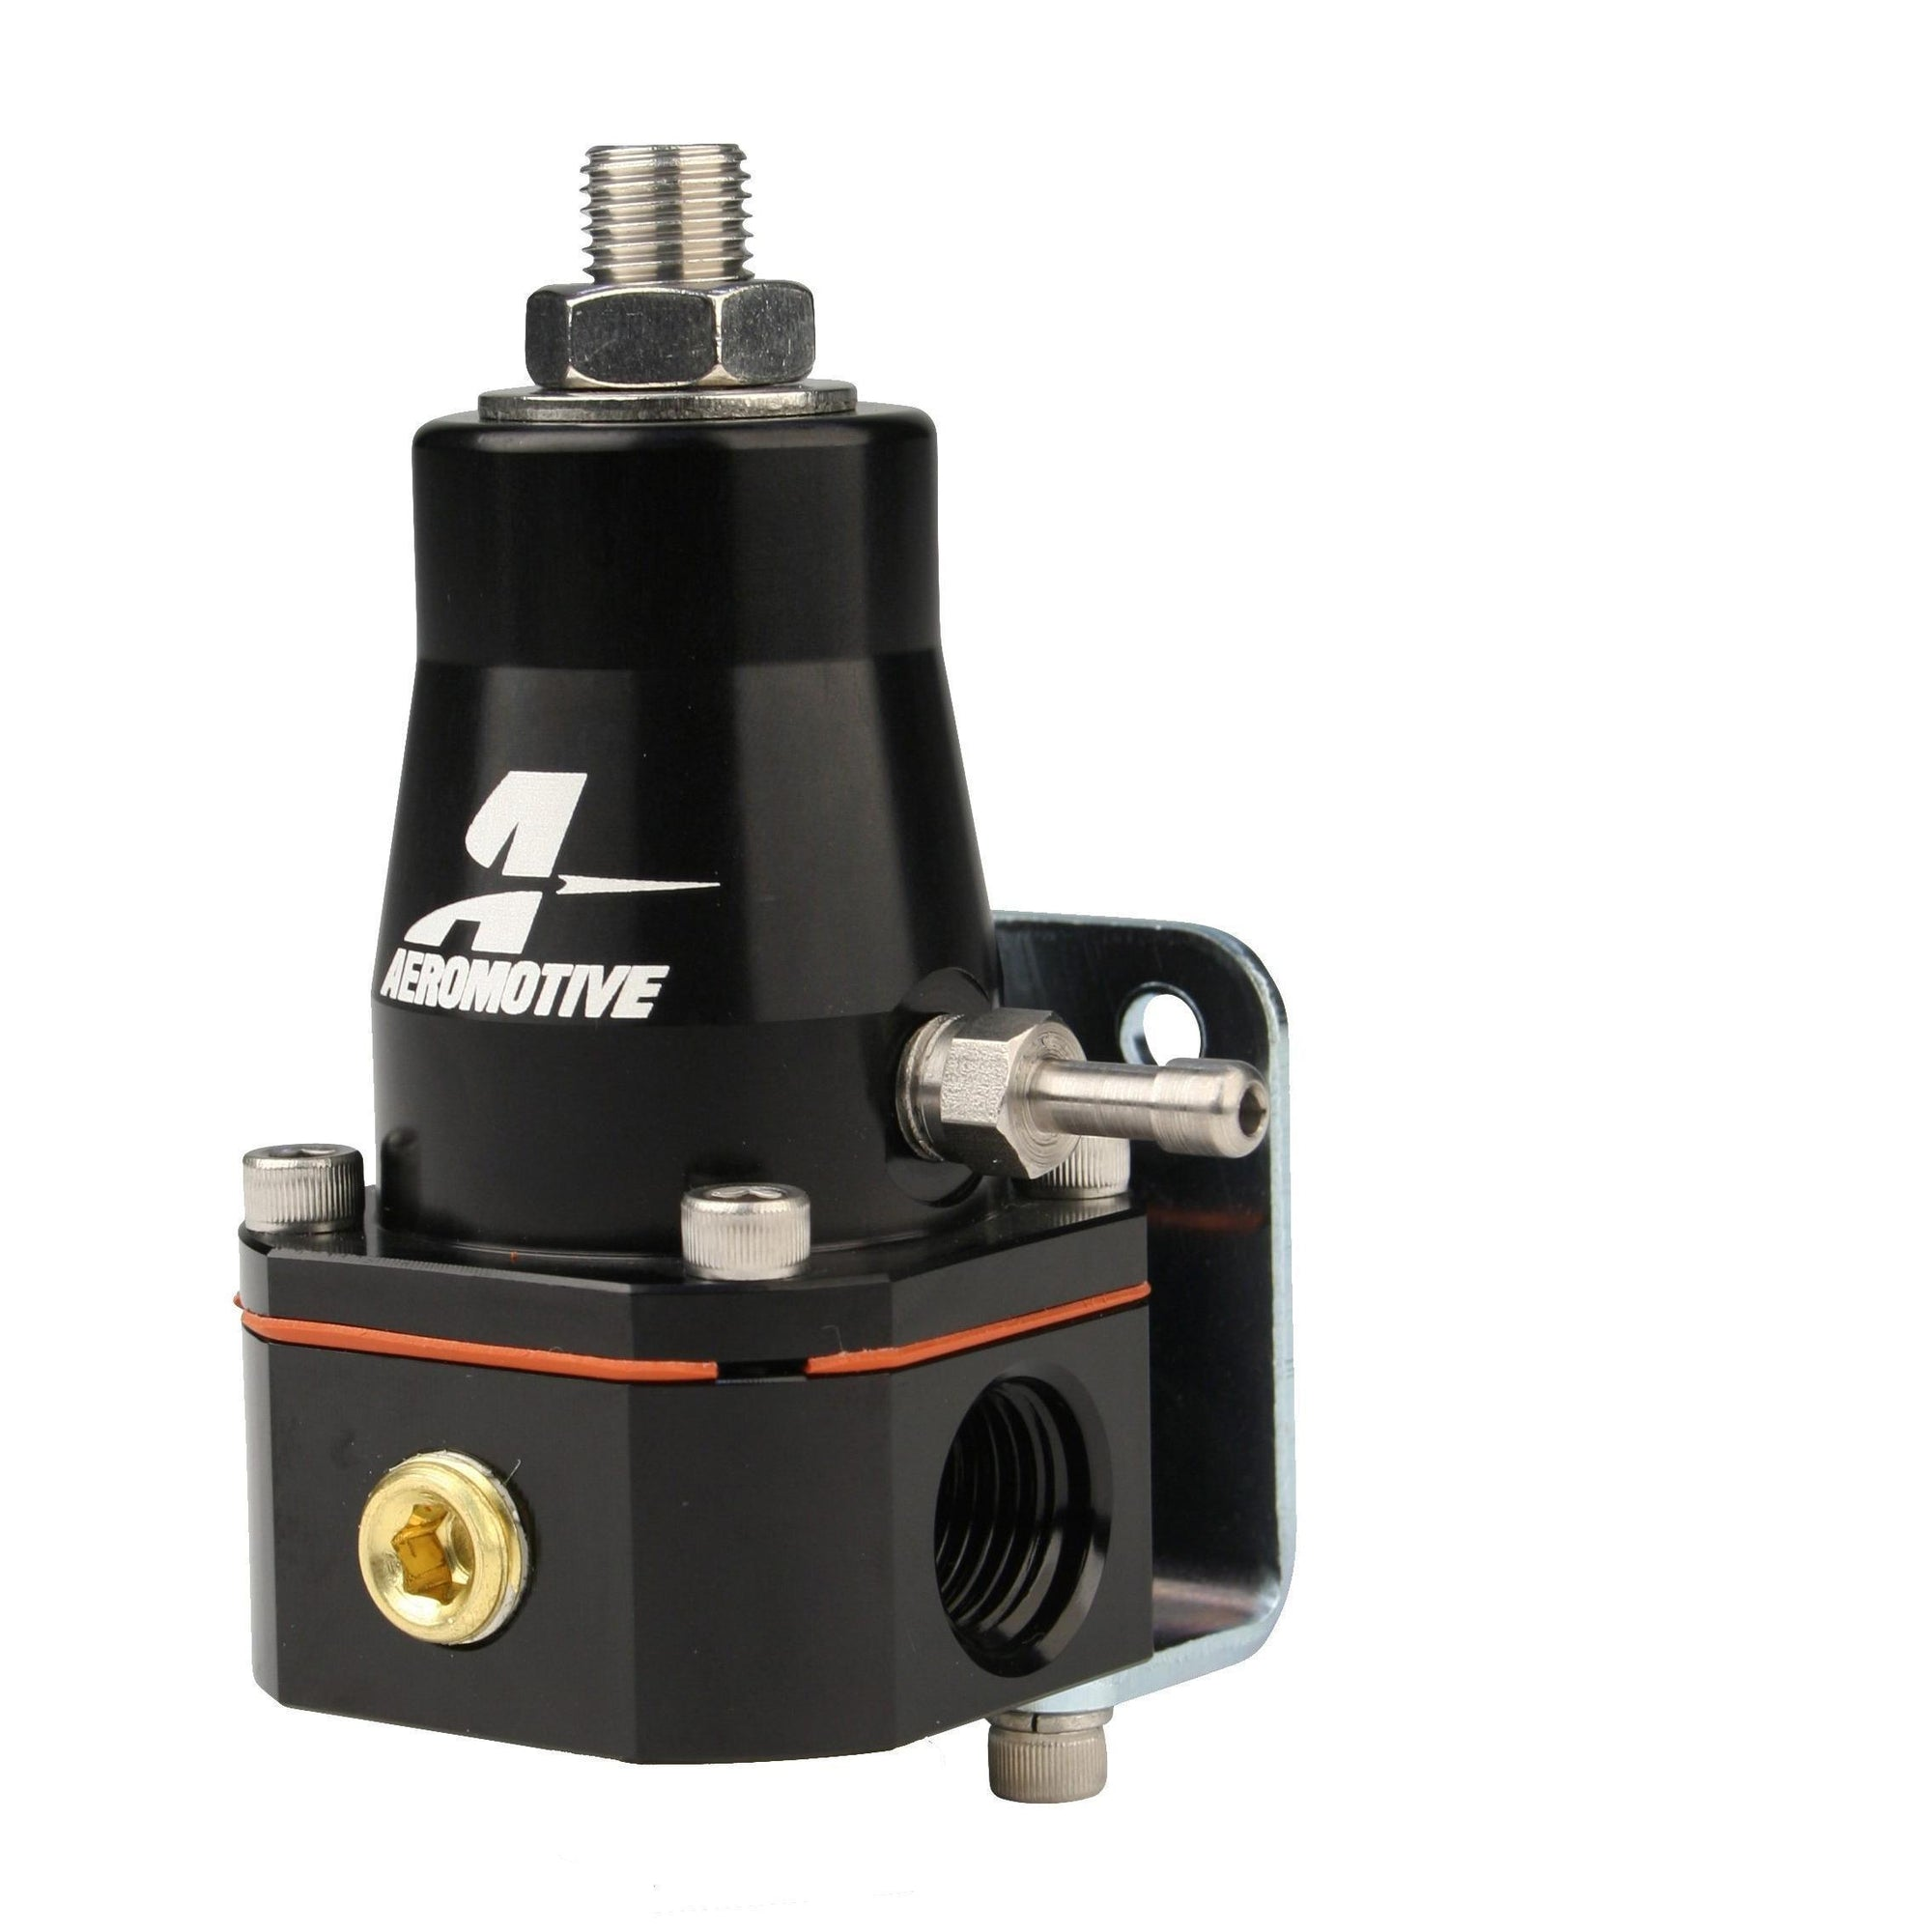 Aeromotive EFI Regulator 30-70psi, Black 13136-Aeromotive-Motion Raceworks